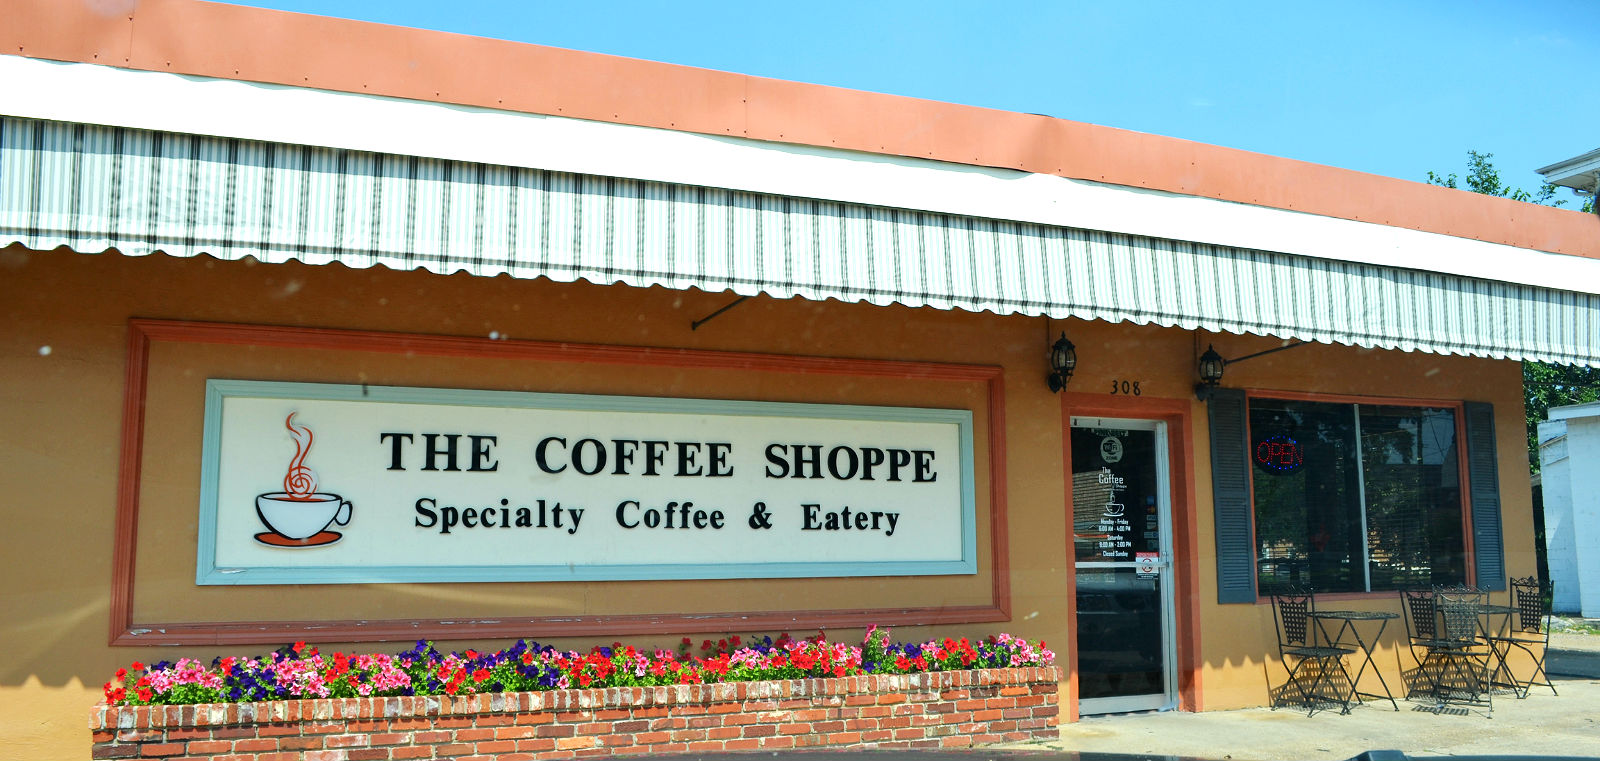 outside image of the Coffee Shoppe eatery